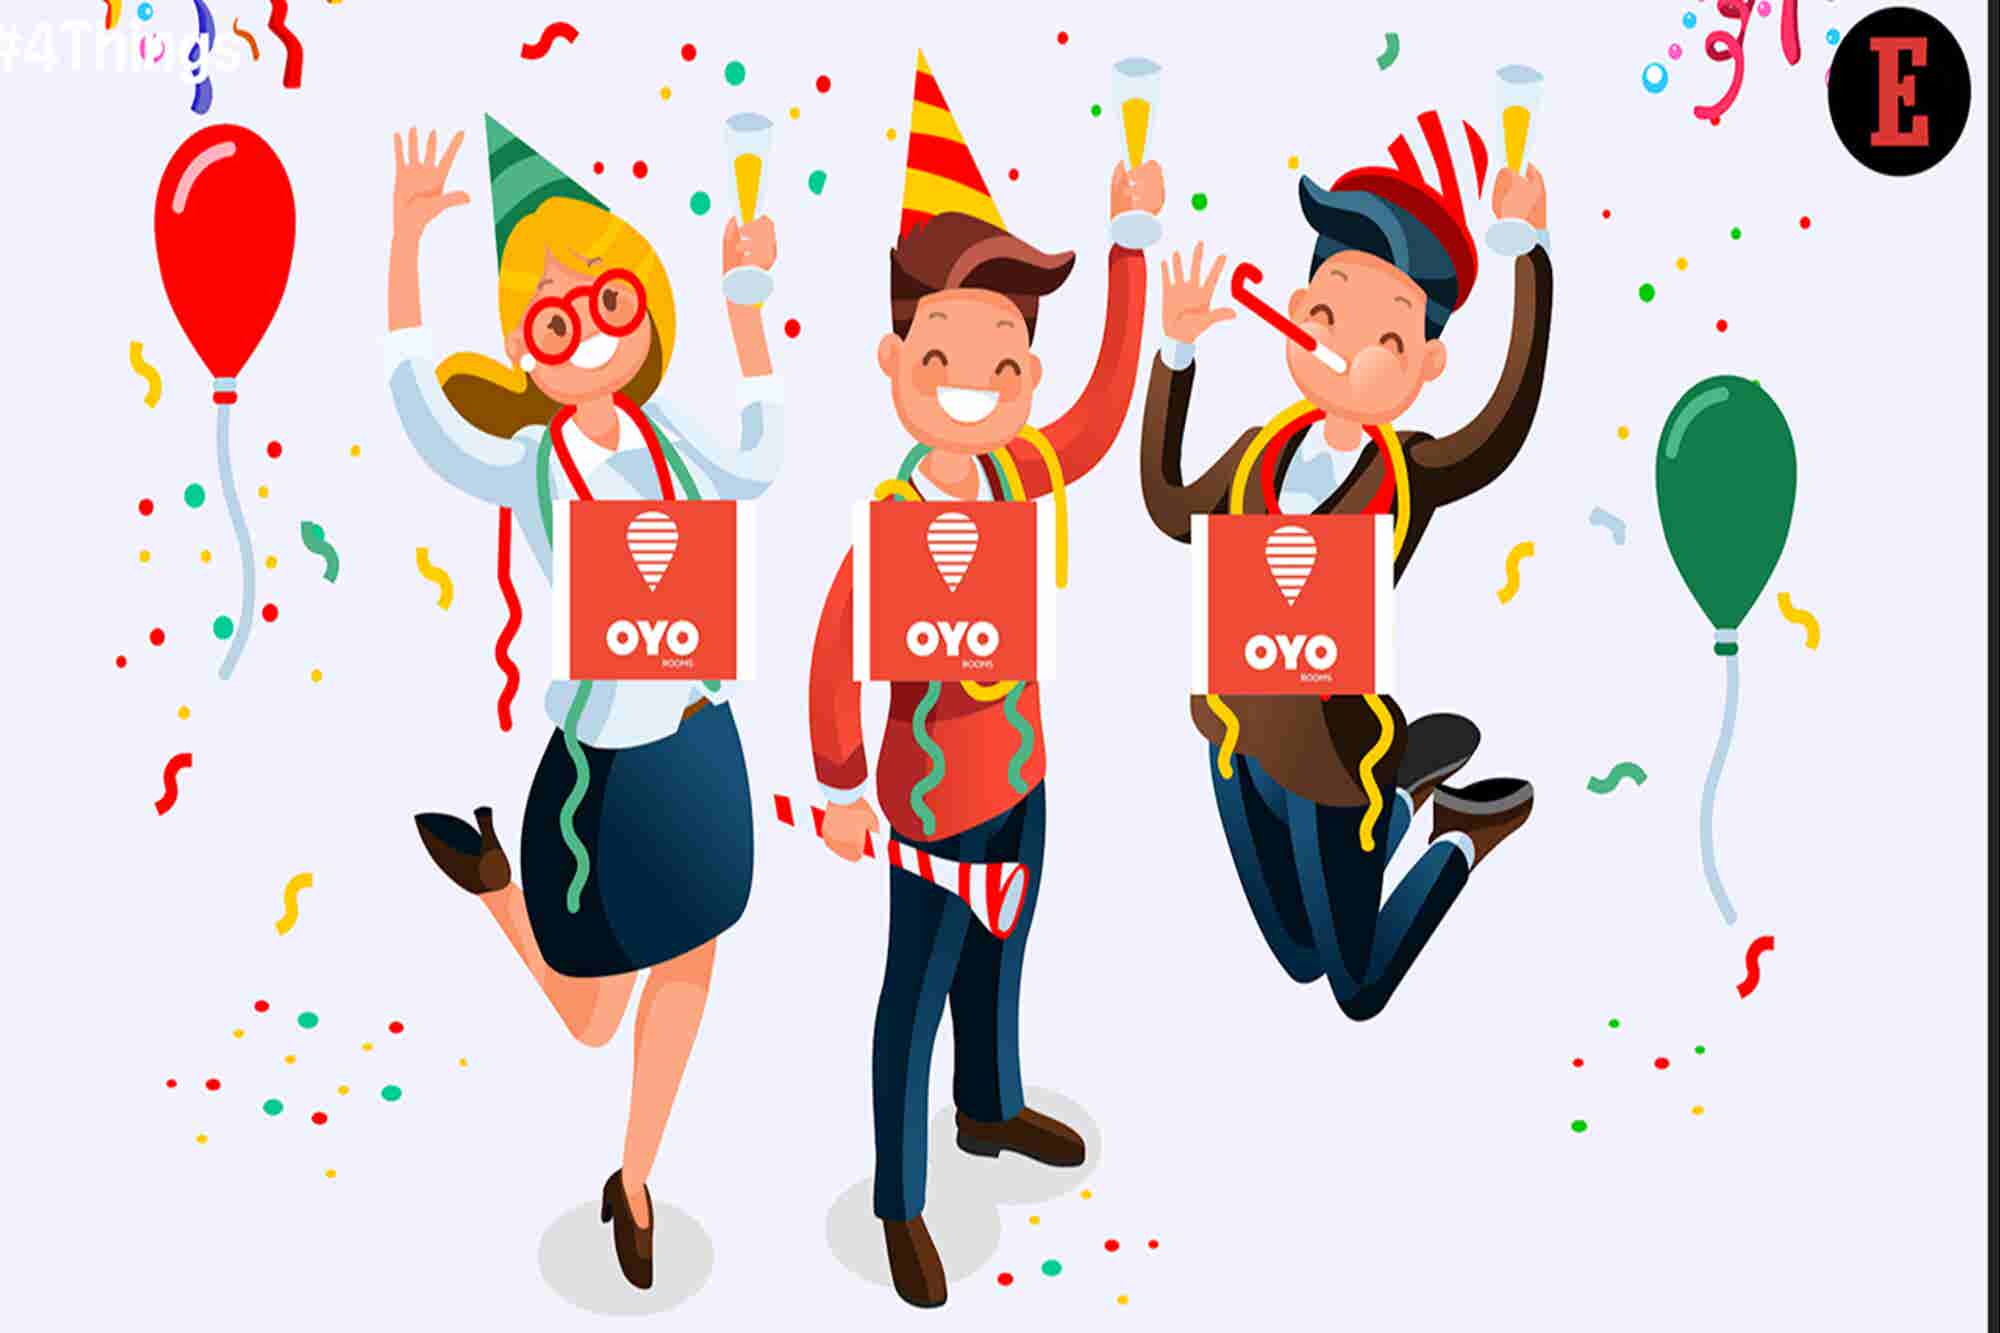 Startup Saturday: Oyo's New Year Gift for Employees & MobiKwik's Reven...